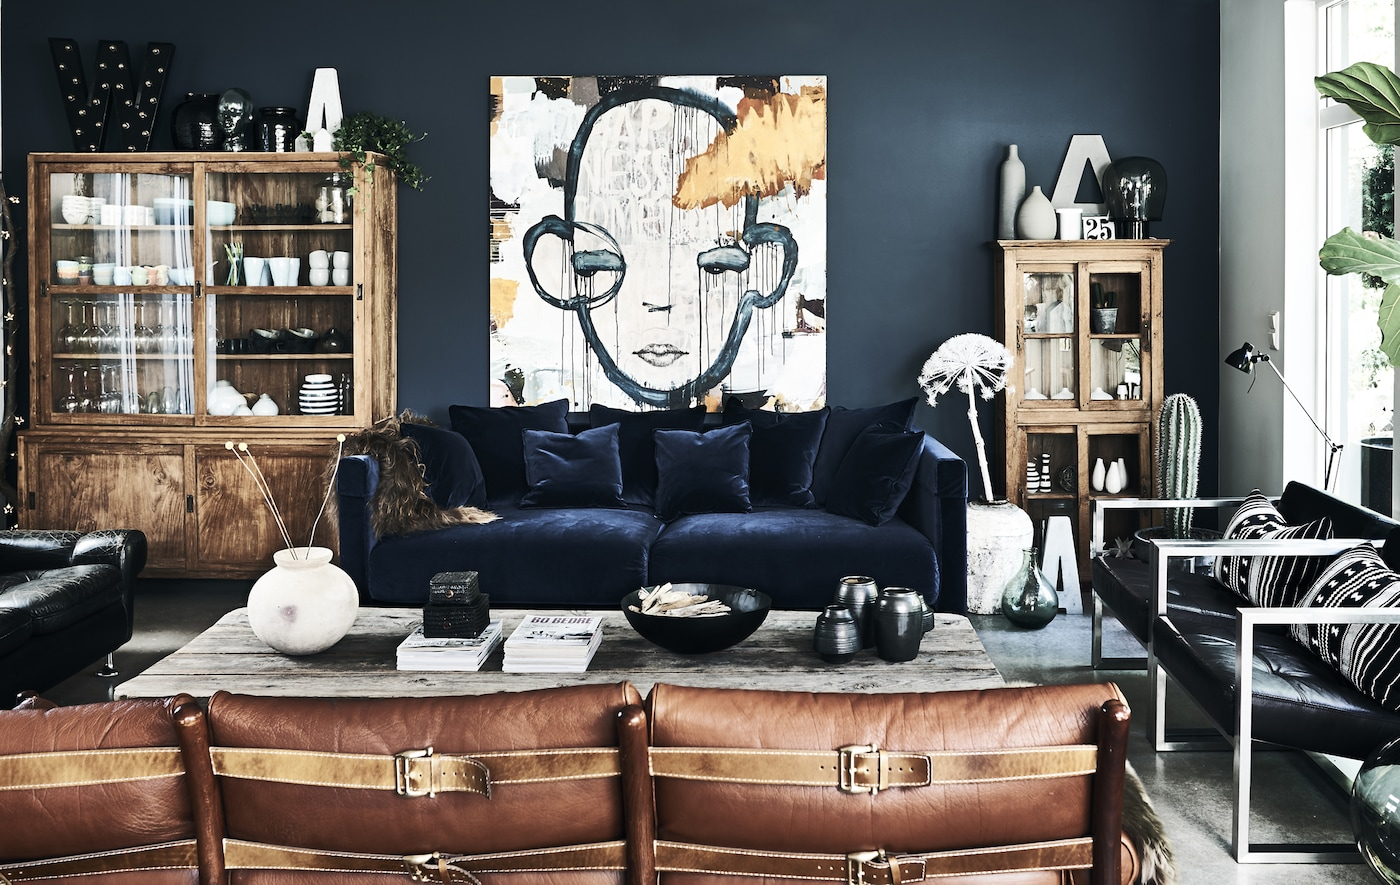 A large living room featuring blue velvet sofa, brown leather sofa and black leather armchairs, all facing a grey wood table.